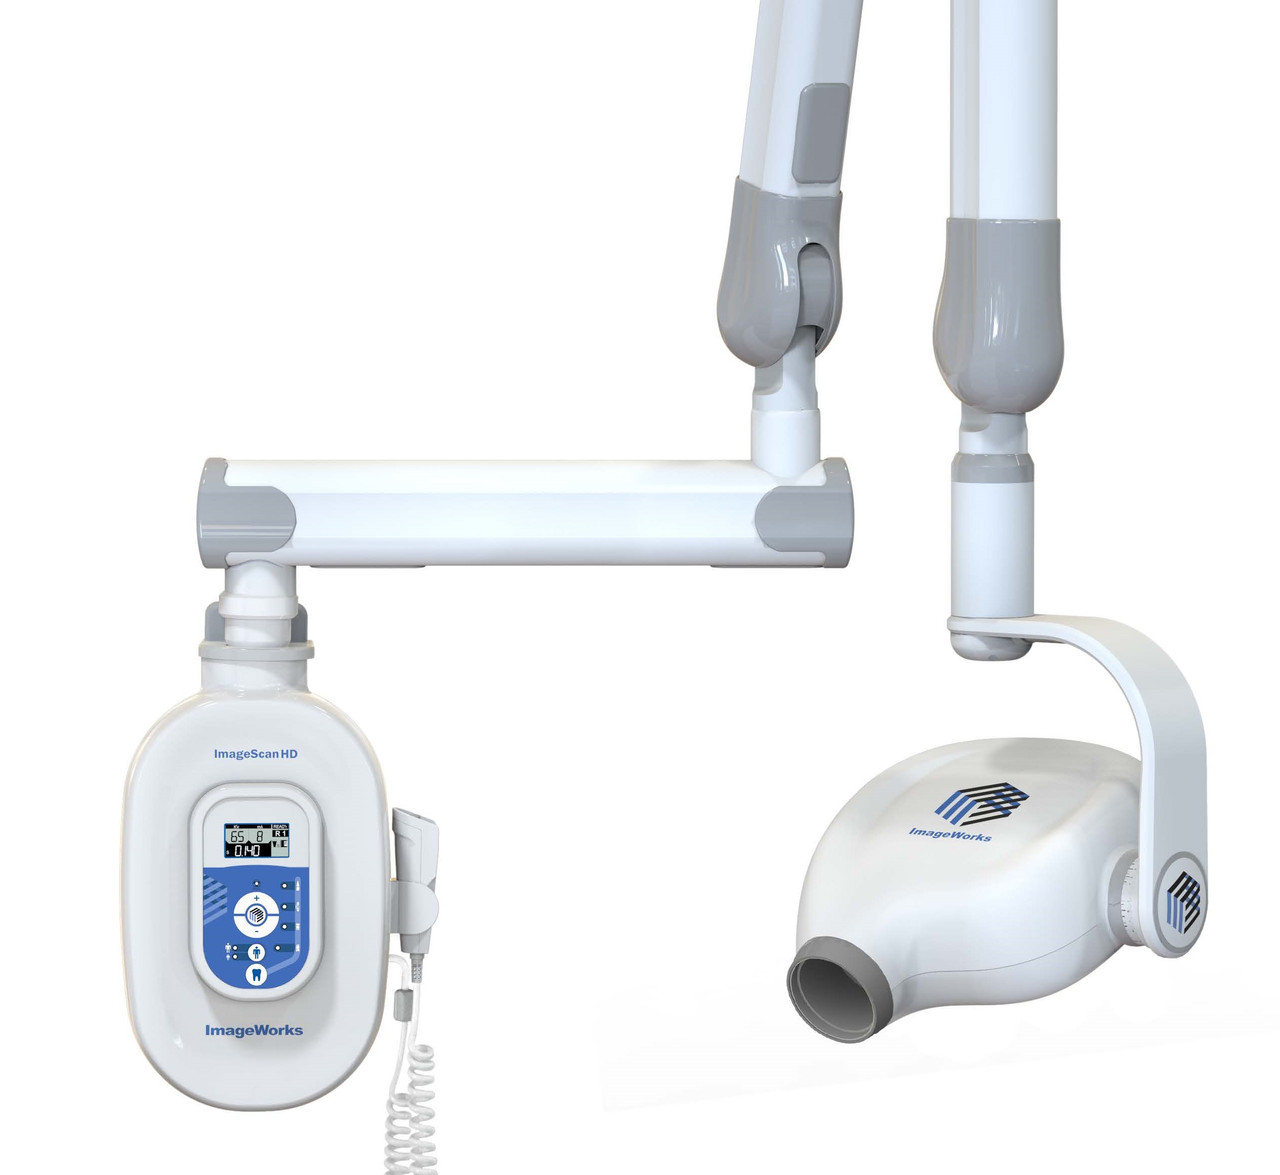 ImageScan HD Intraoral X-Ray Wall Mounted